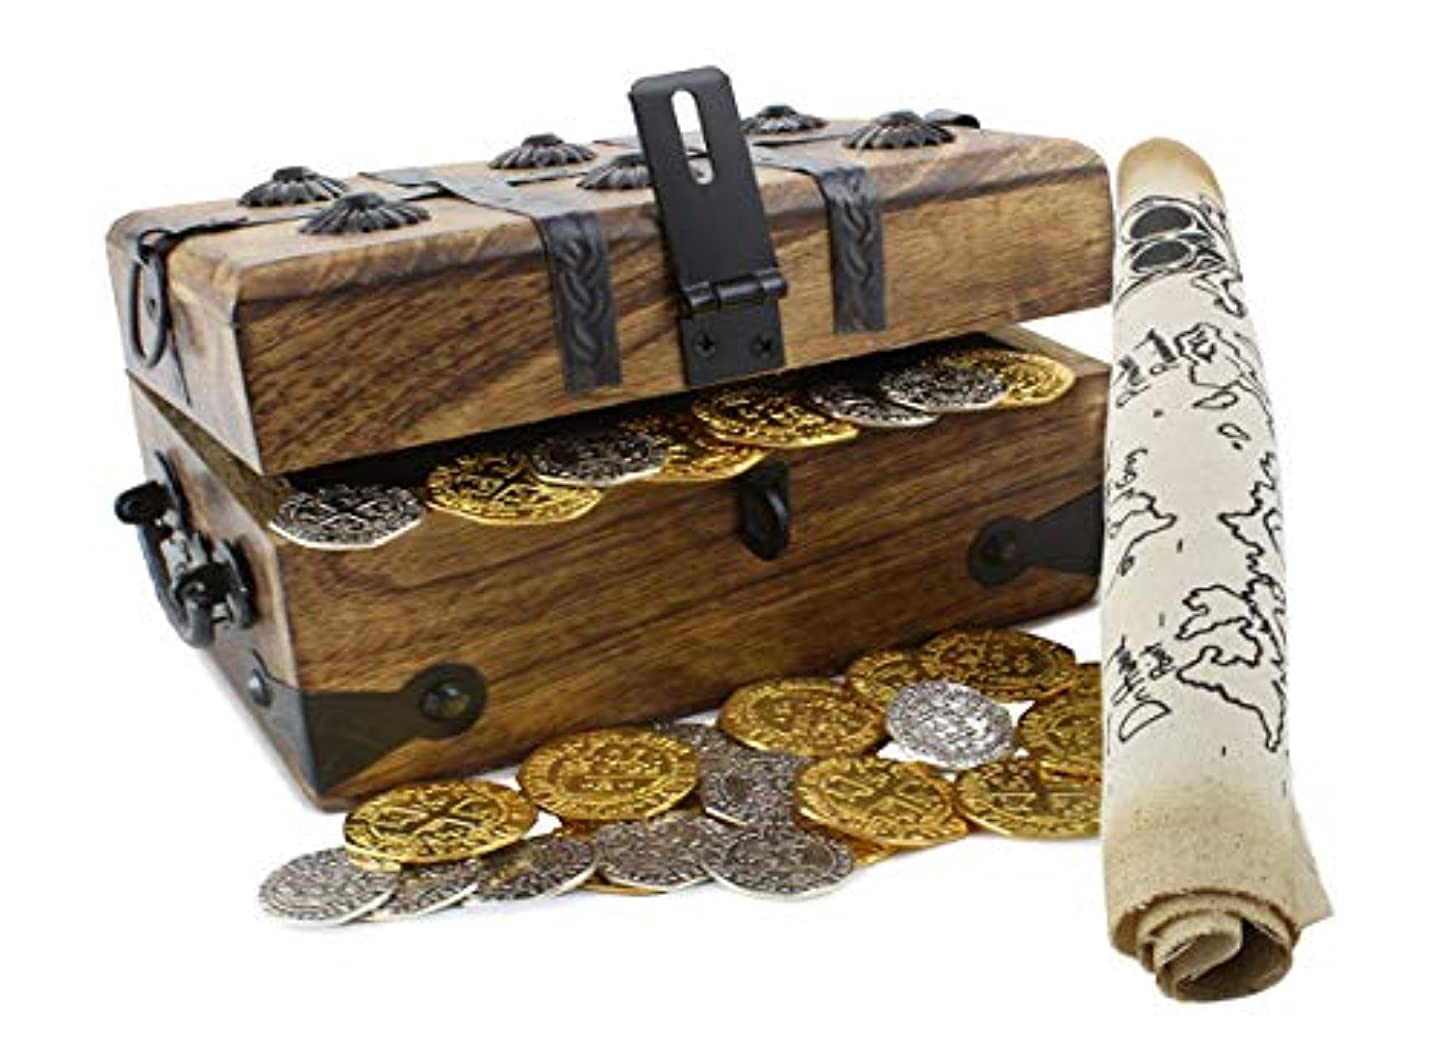 Pirate Treasure Chest Metal Coins Map Gold Silver Antique Finish Party Favor By Well Pack Box gbwvmrghlpzc